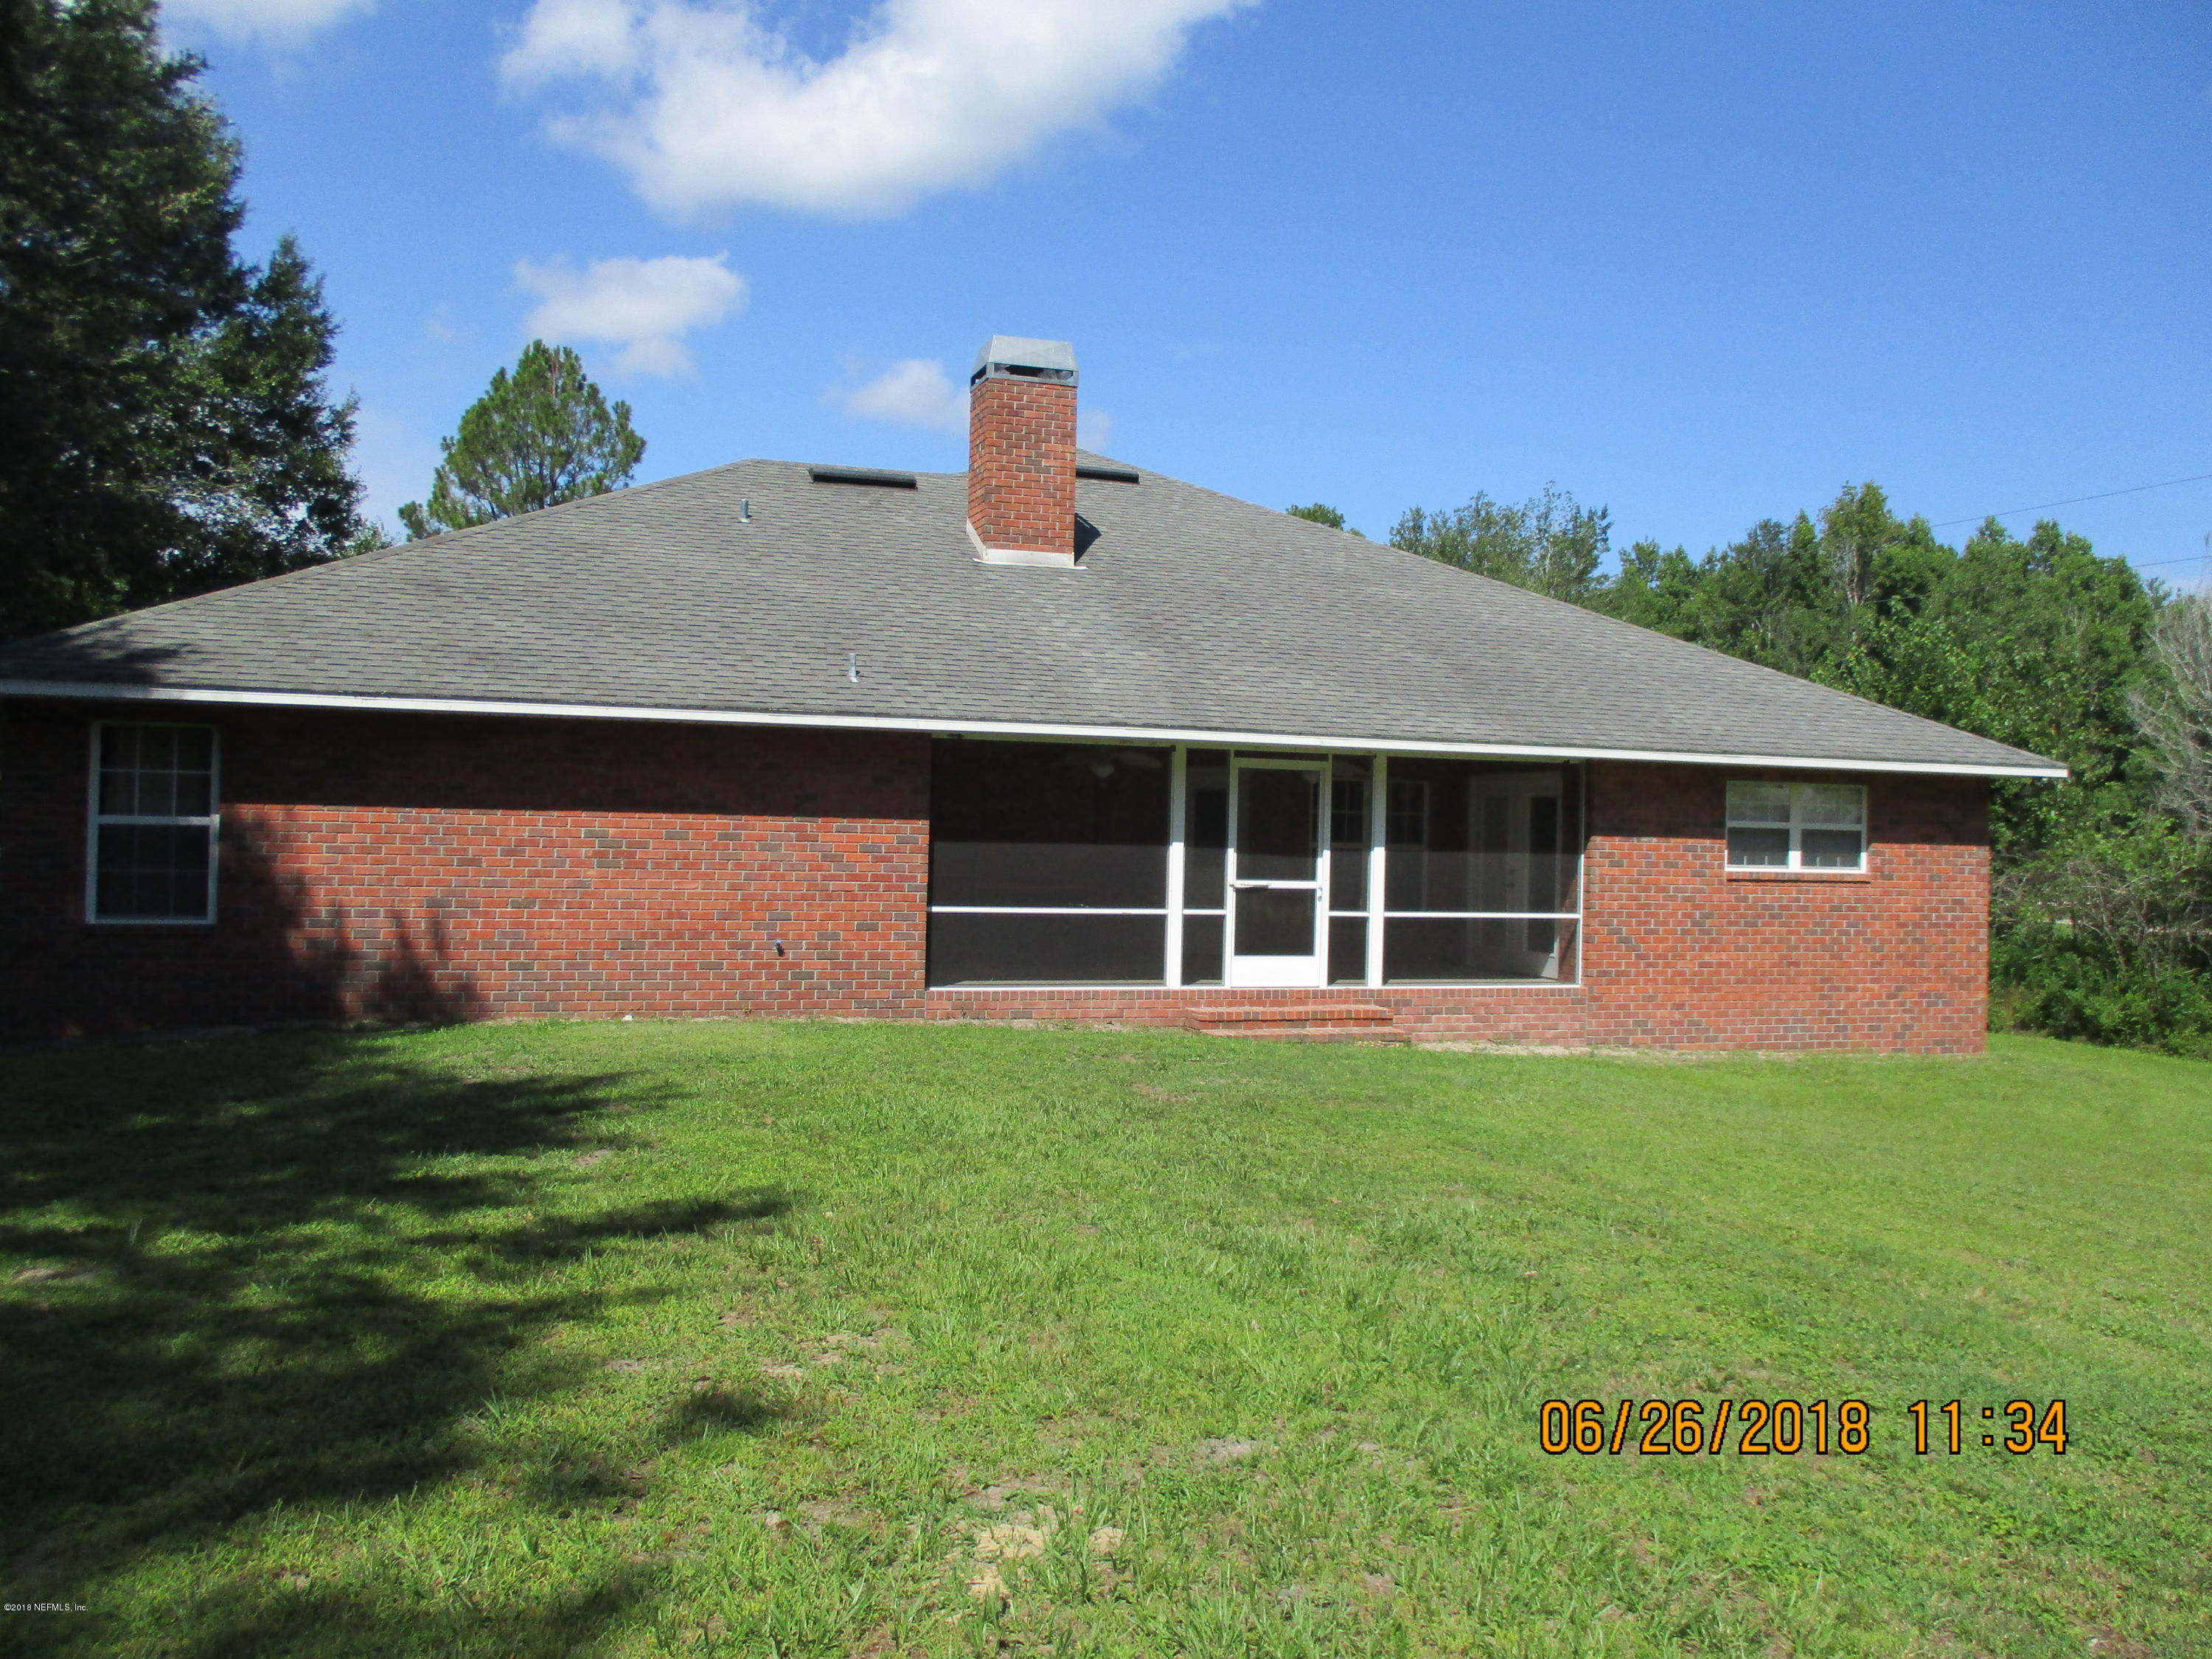 9715 136TH, STARKE, FLORIDA 32091, 3 Bedrooms Bedrooms, ,2 BathroomsBathrooms,Residential - single family,For sale,136TH,943765